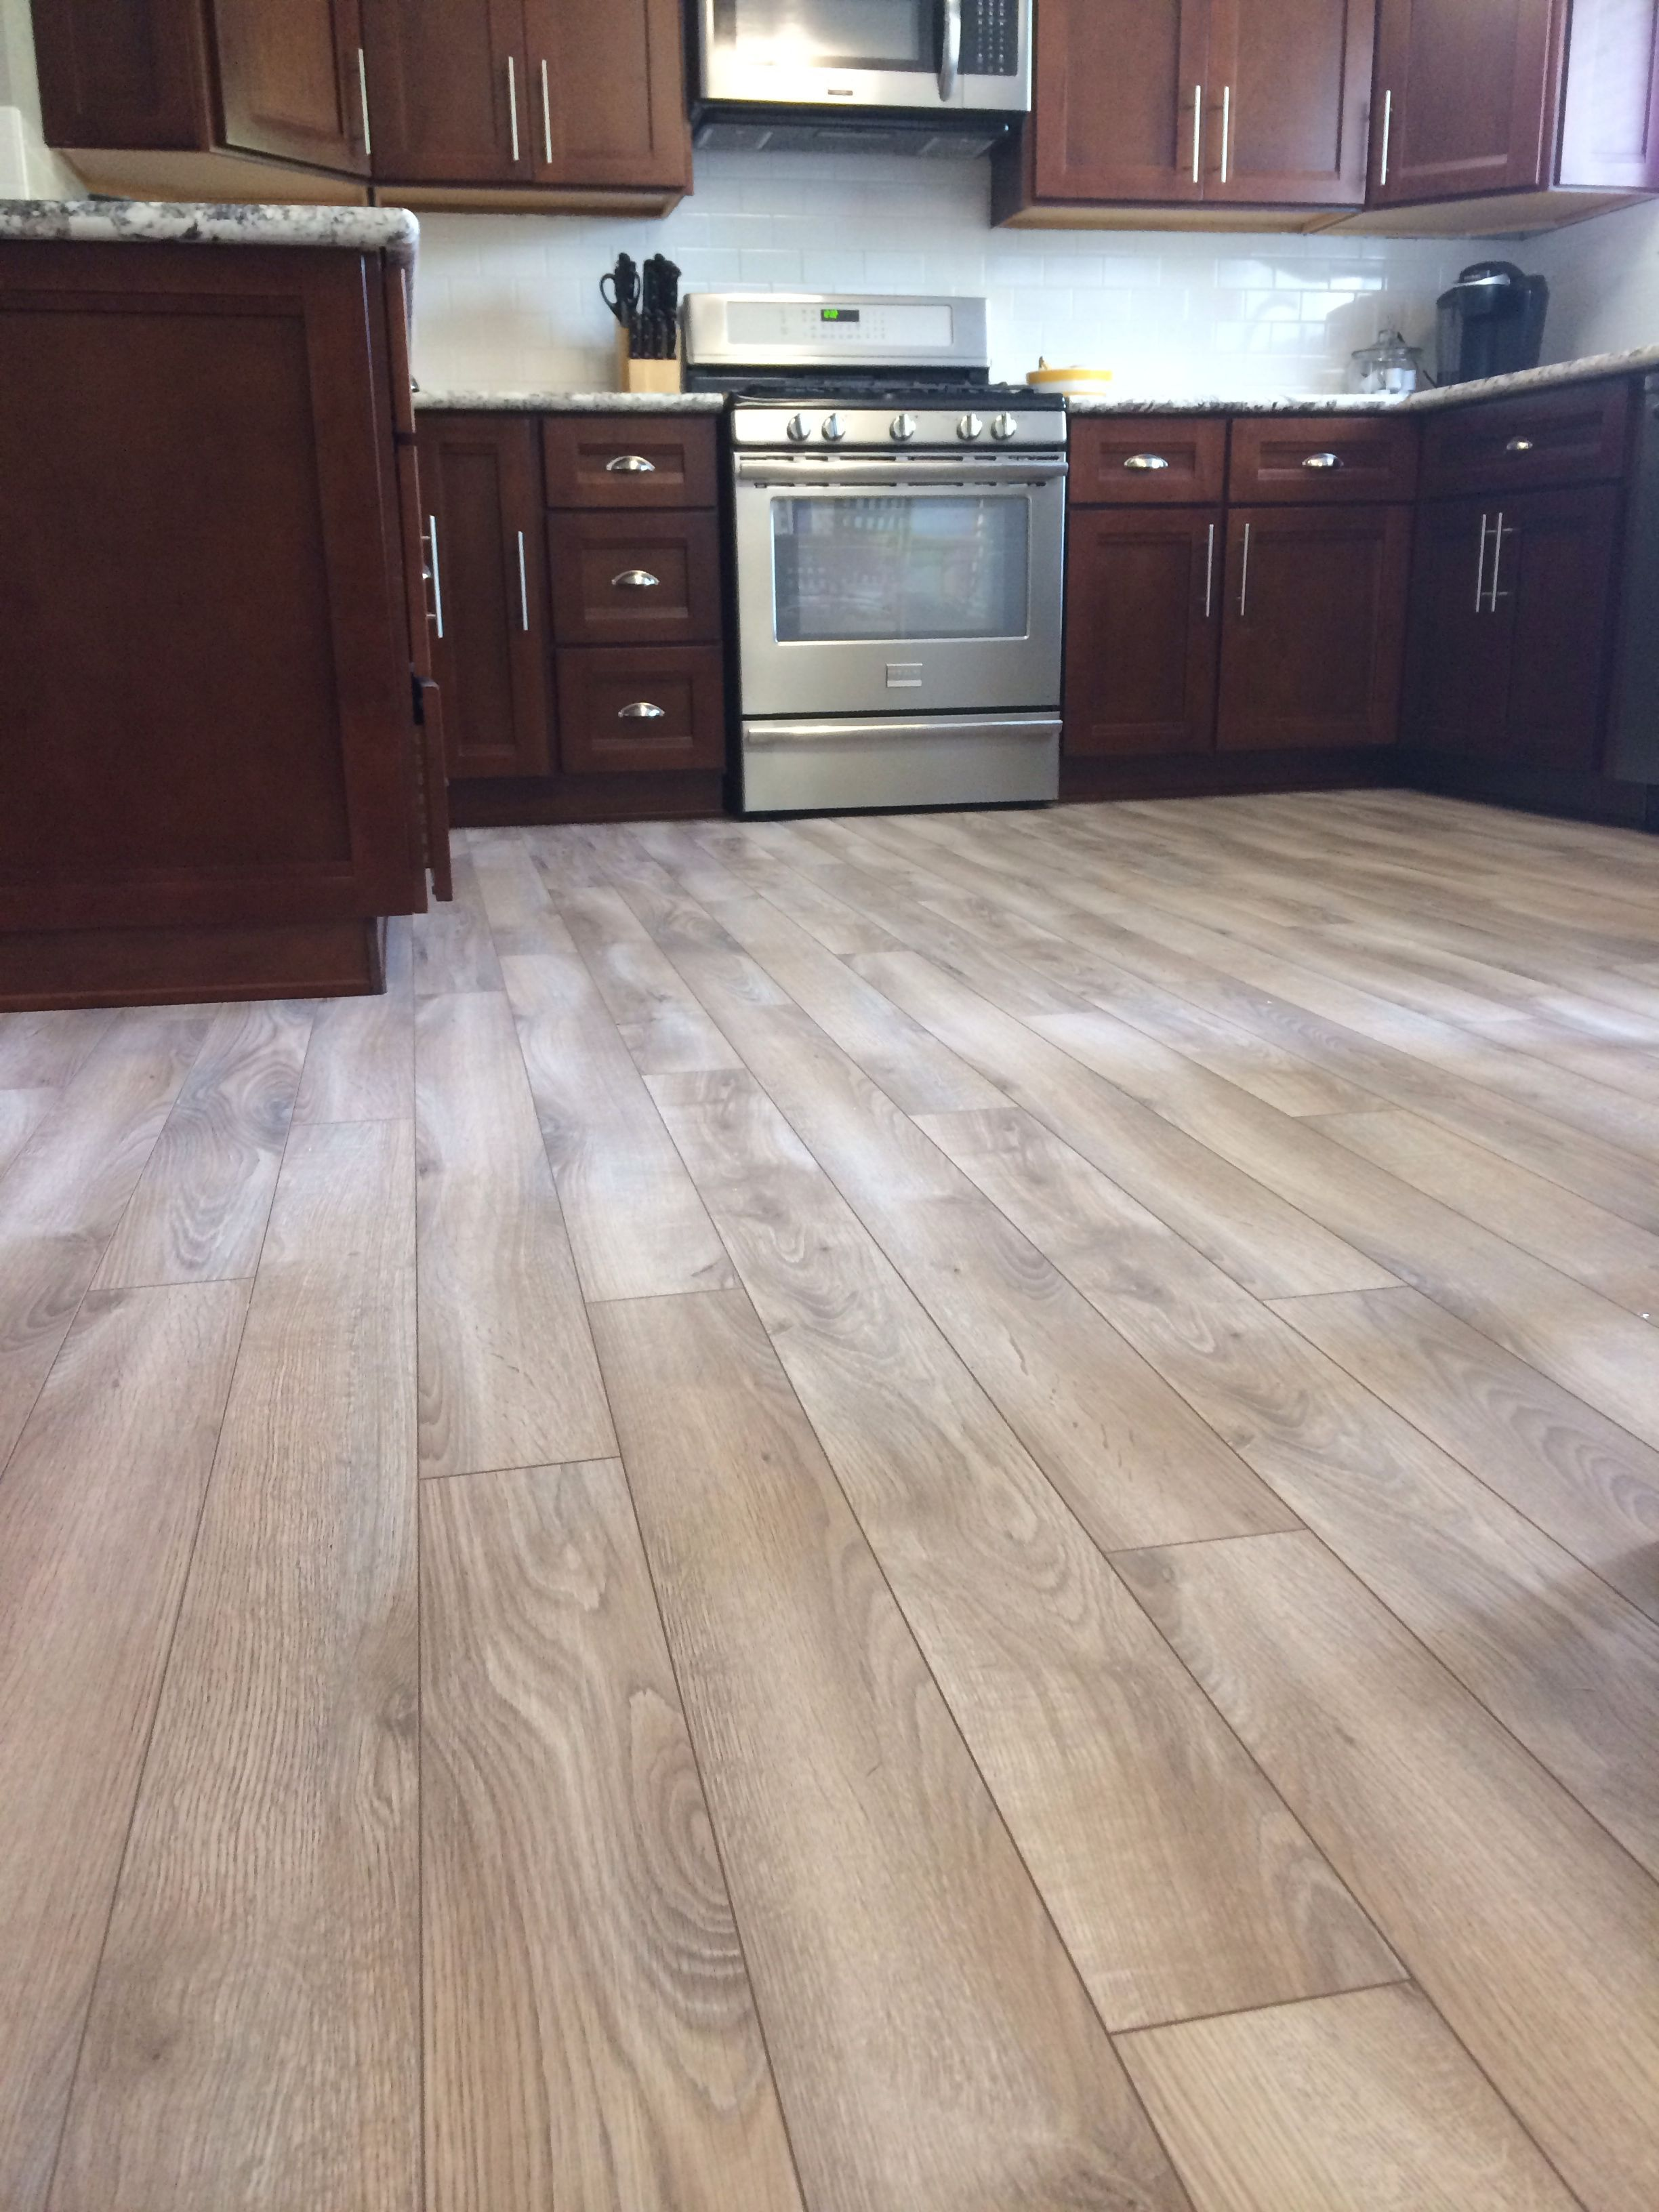 Grey Floors Delaware Bay Driftwood Floor From Lumber Liquidators With Dark Cherry Cabinets Cherry Cabinets Kitchen Cherry Wood Kitchens Cherry Wood Cabinets